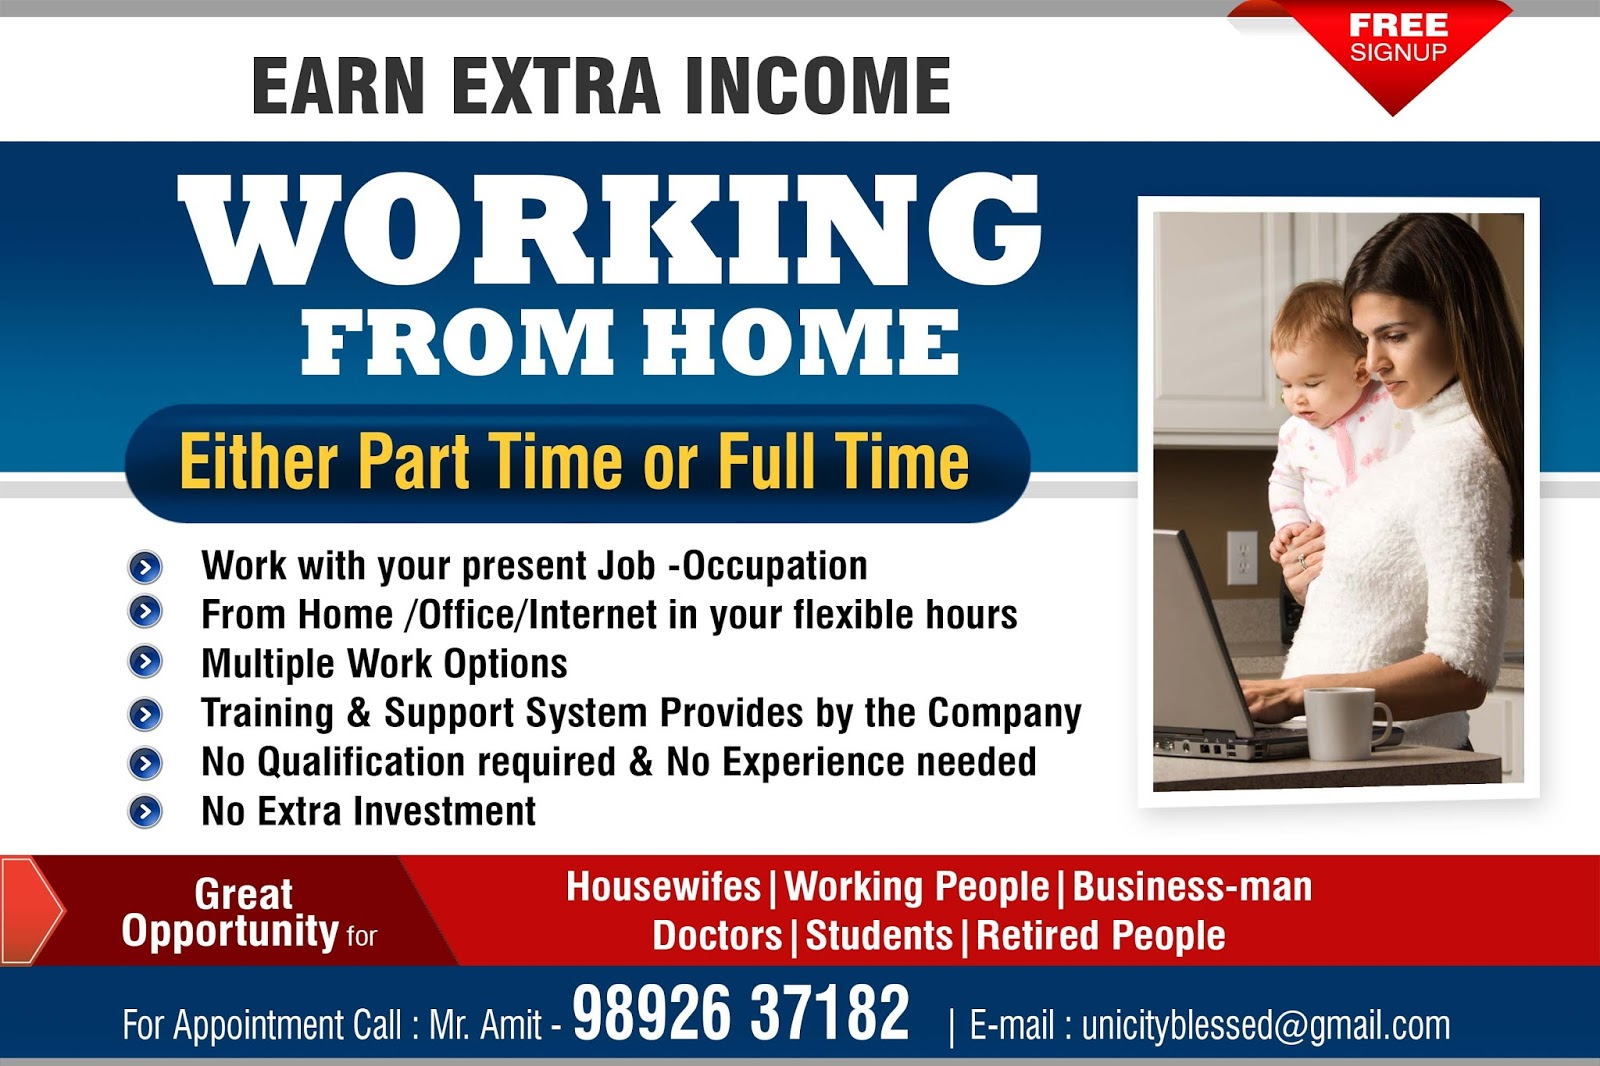 work from home business opportunities in india best business 2017